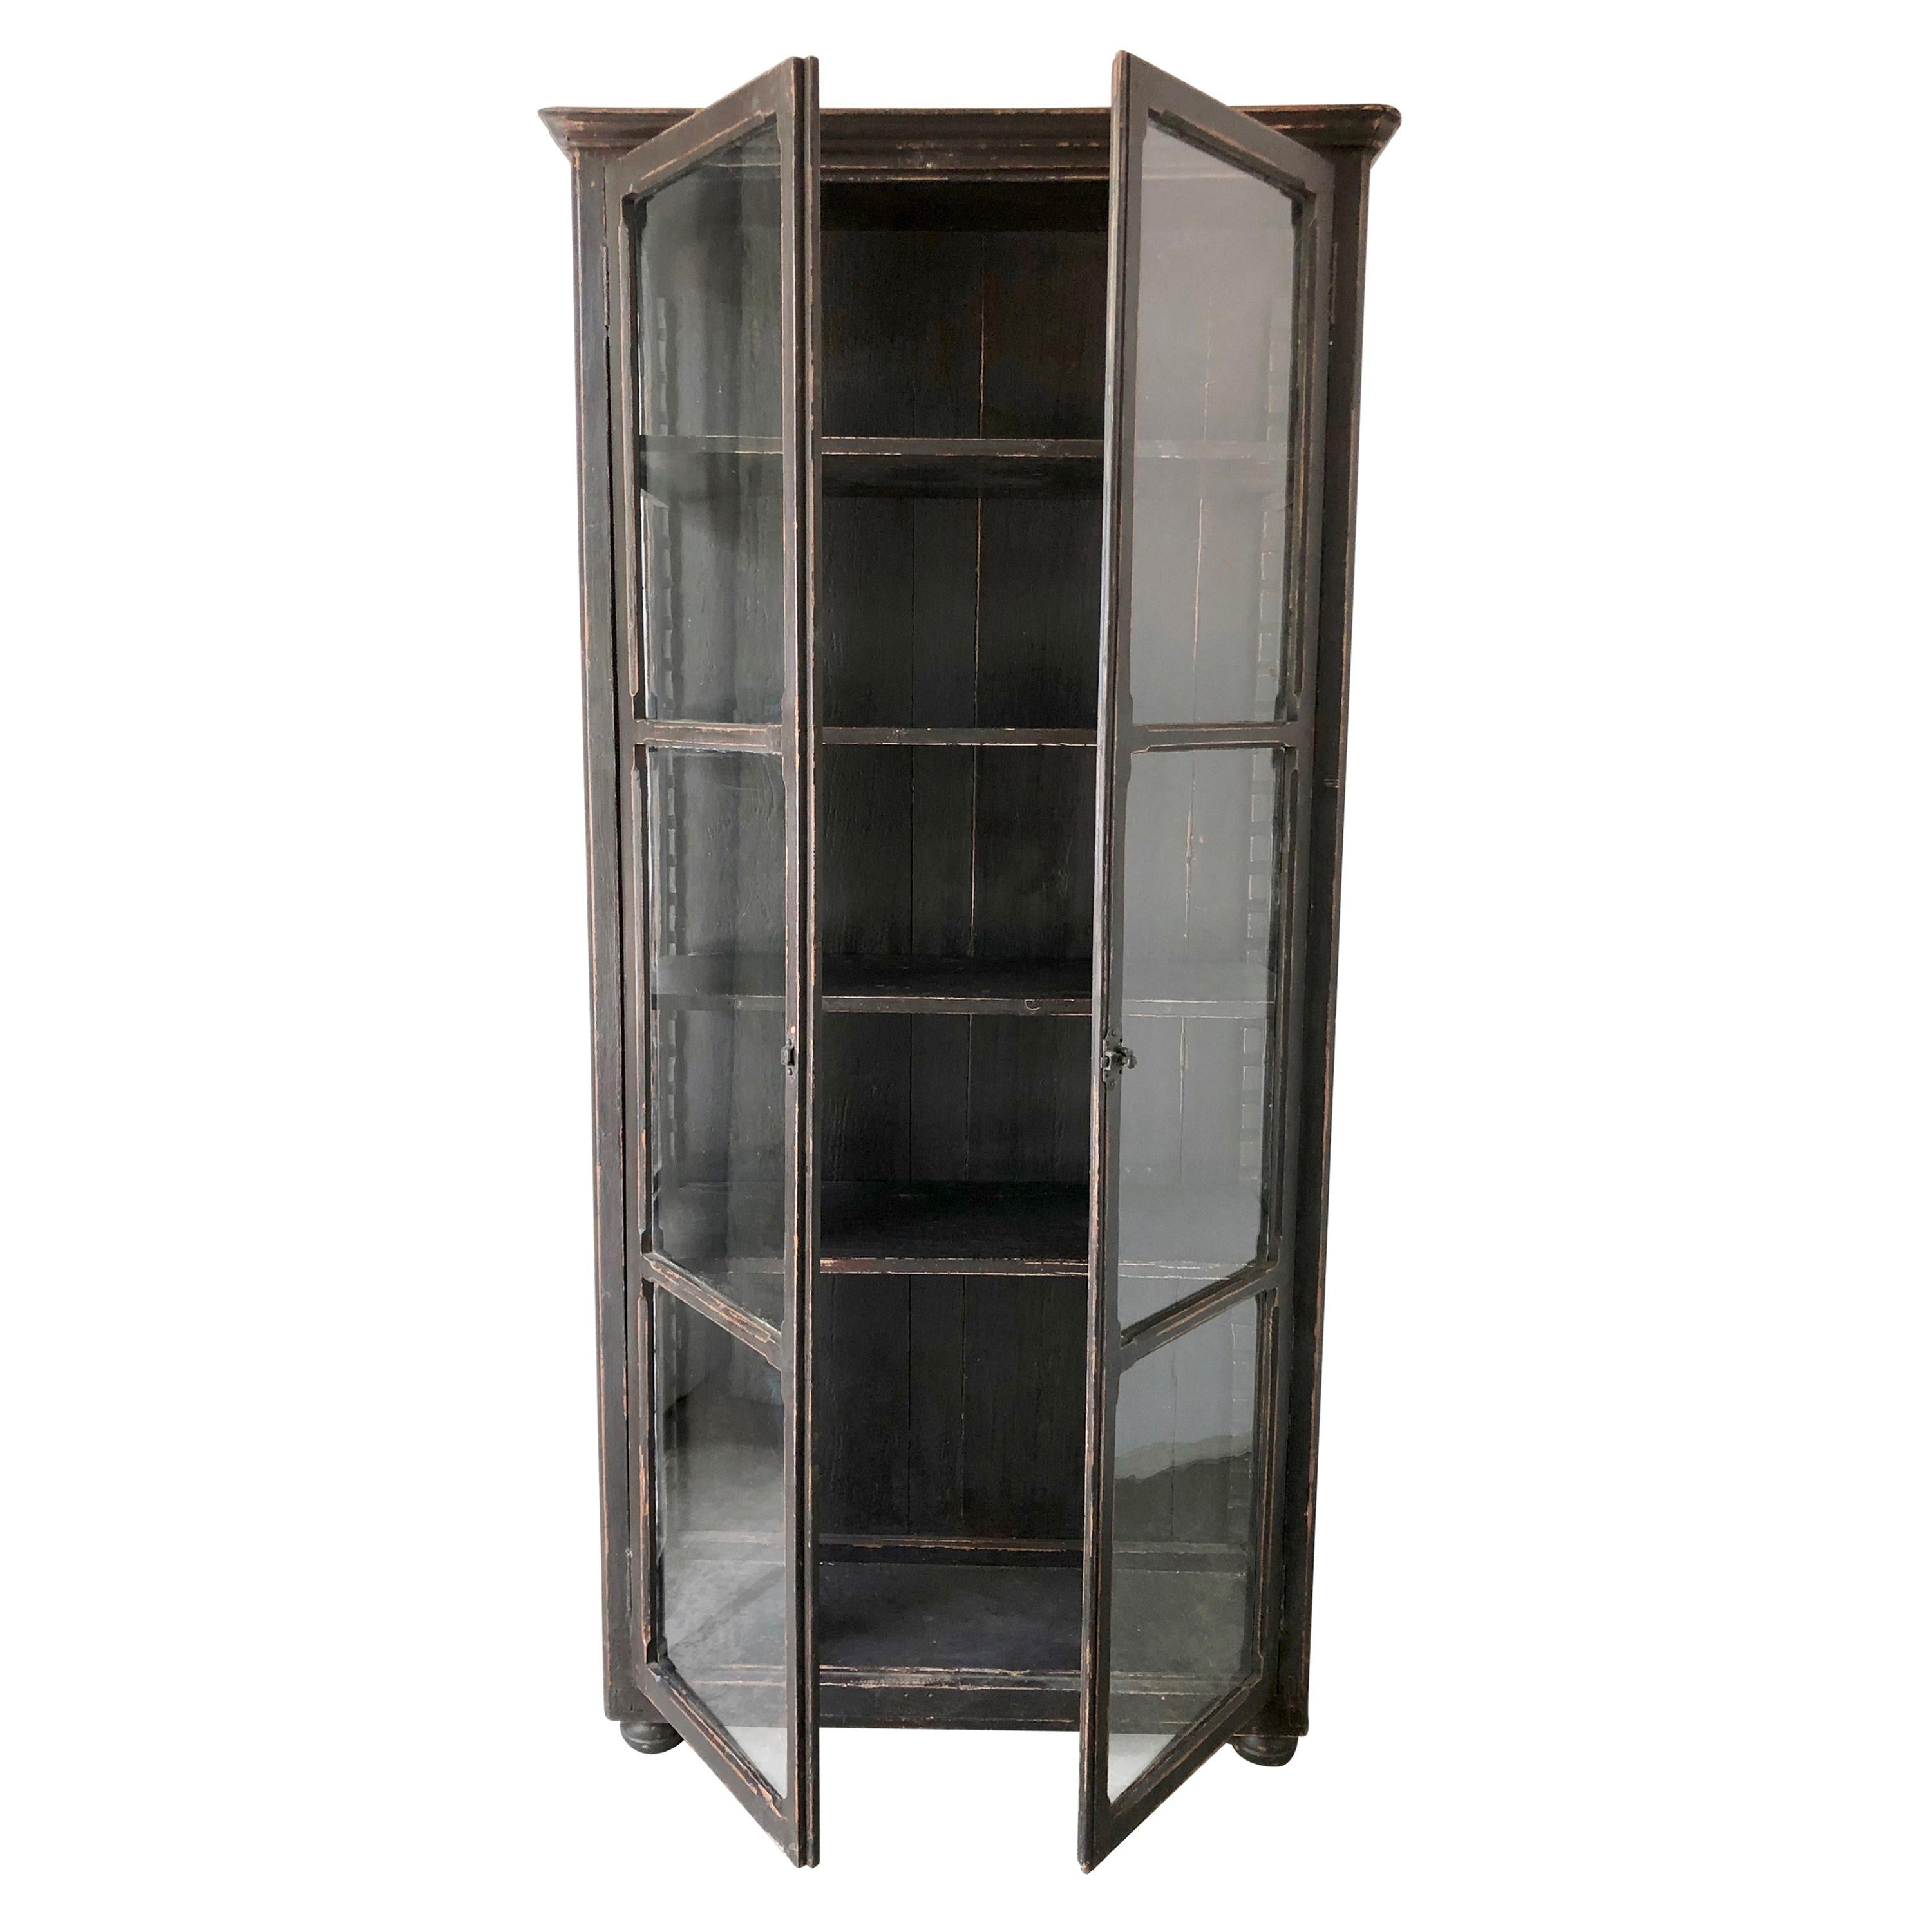 19th Century French Bibliotheque/Display Cabinet